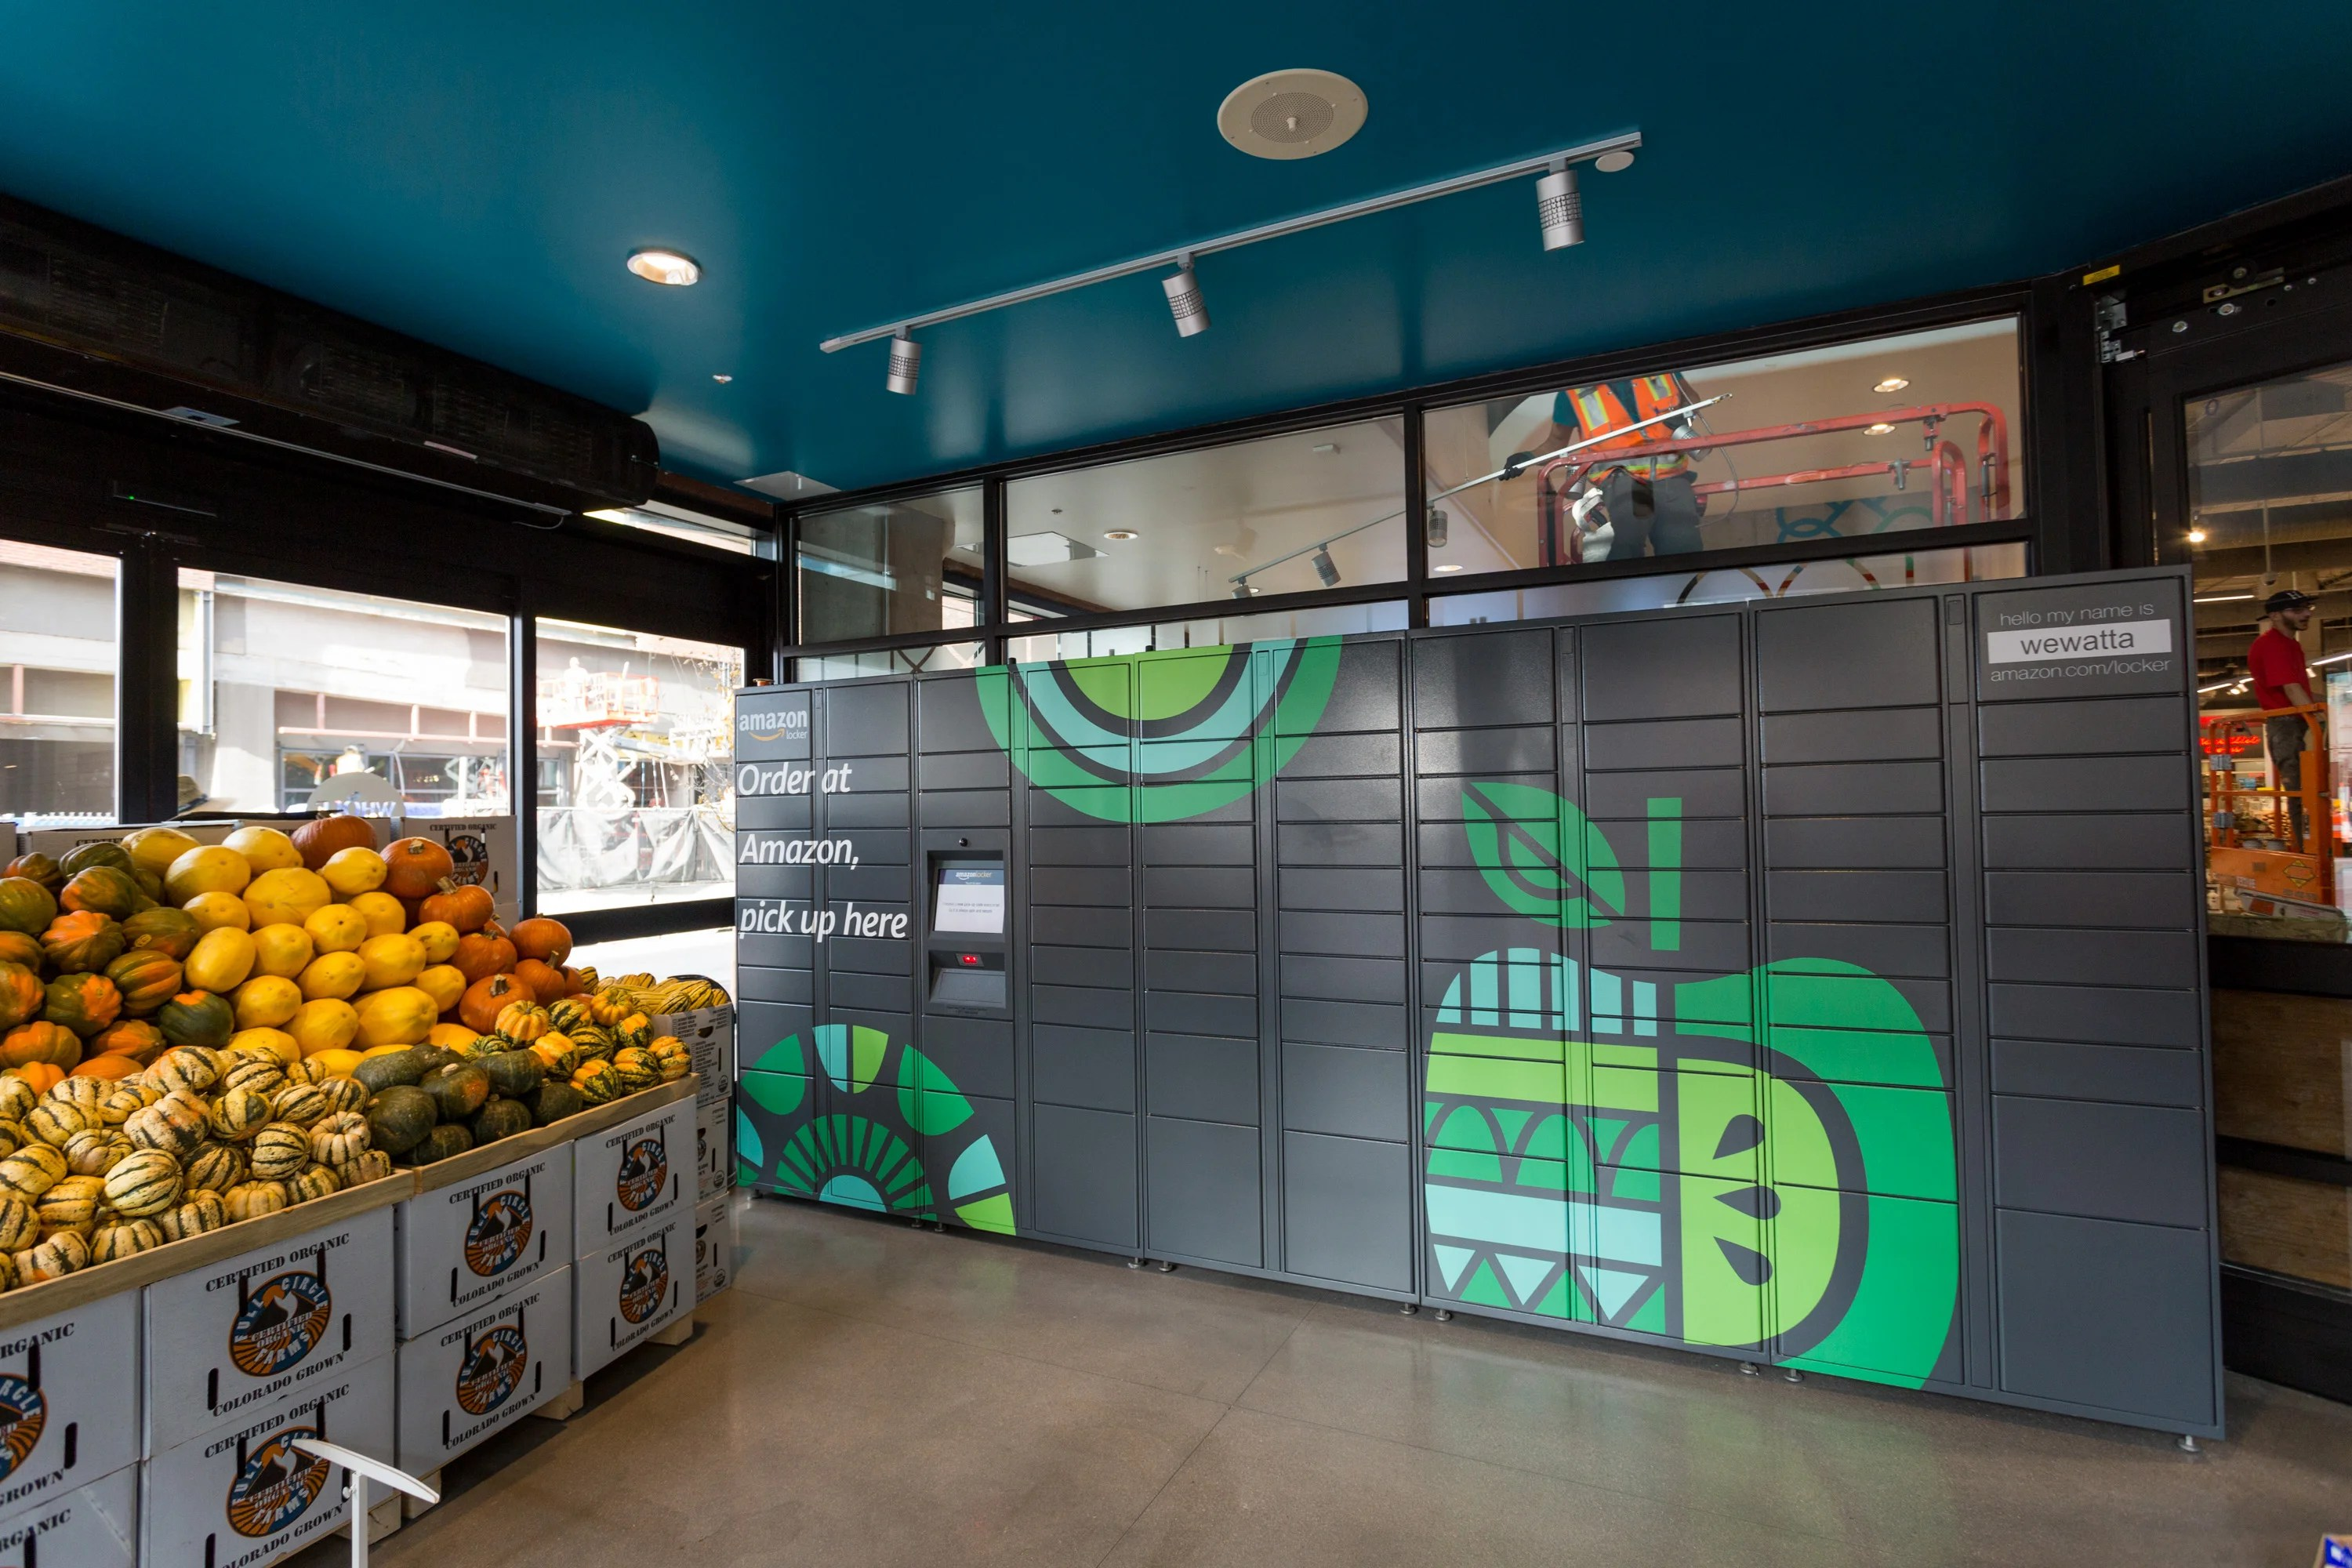 Amazon Whole Foods Why Amazon S New Grocery Ambitions Could Be A Mistake The